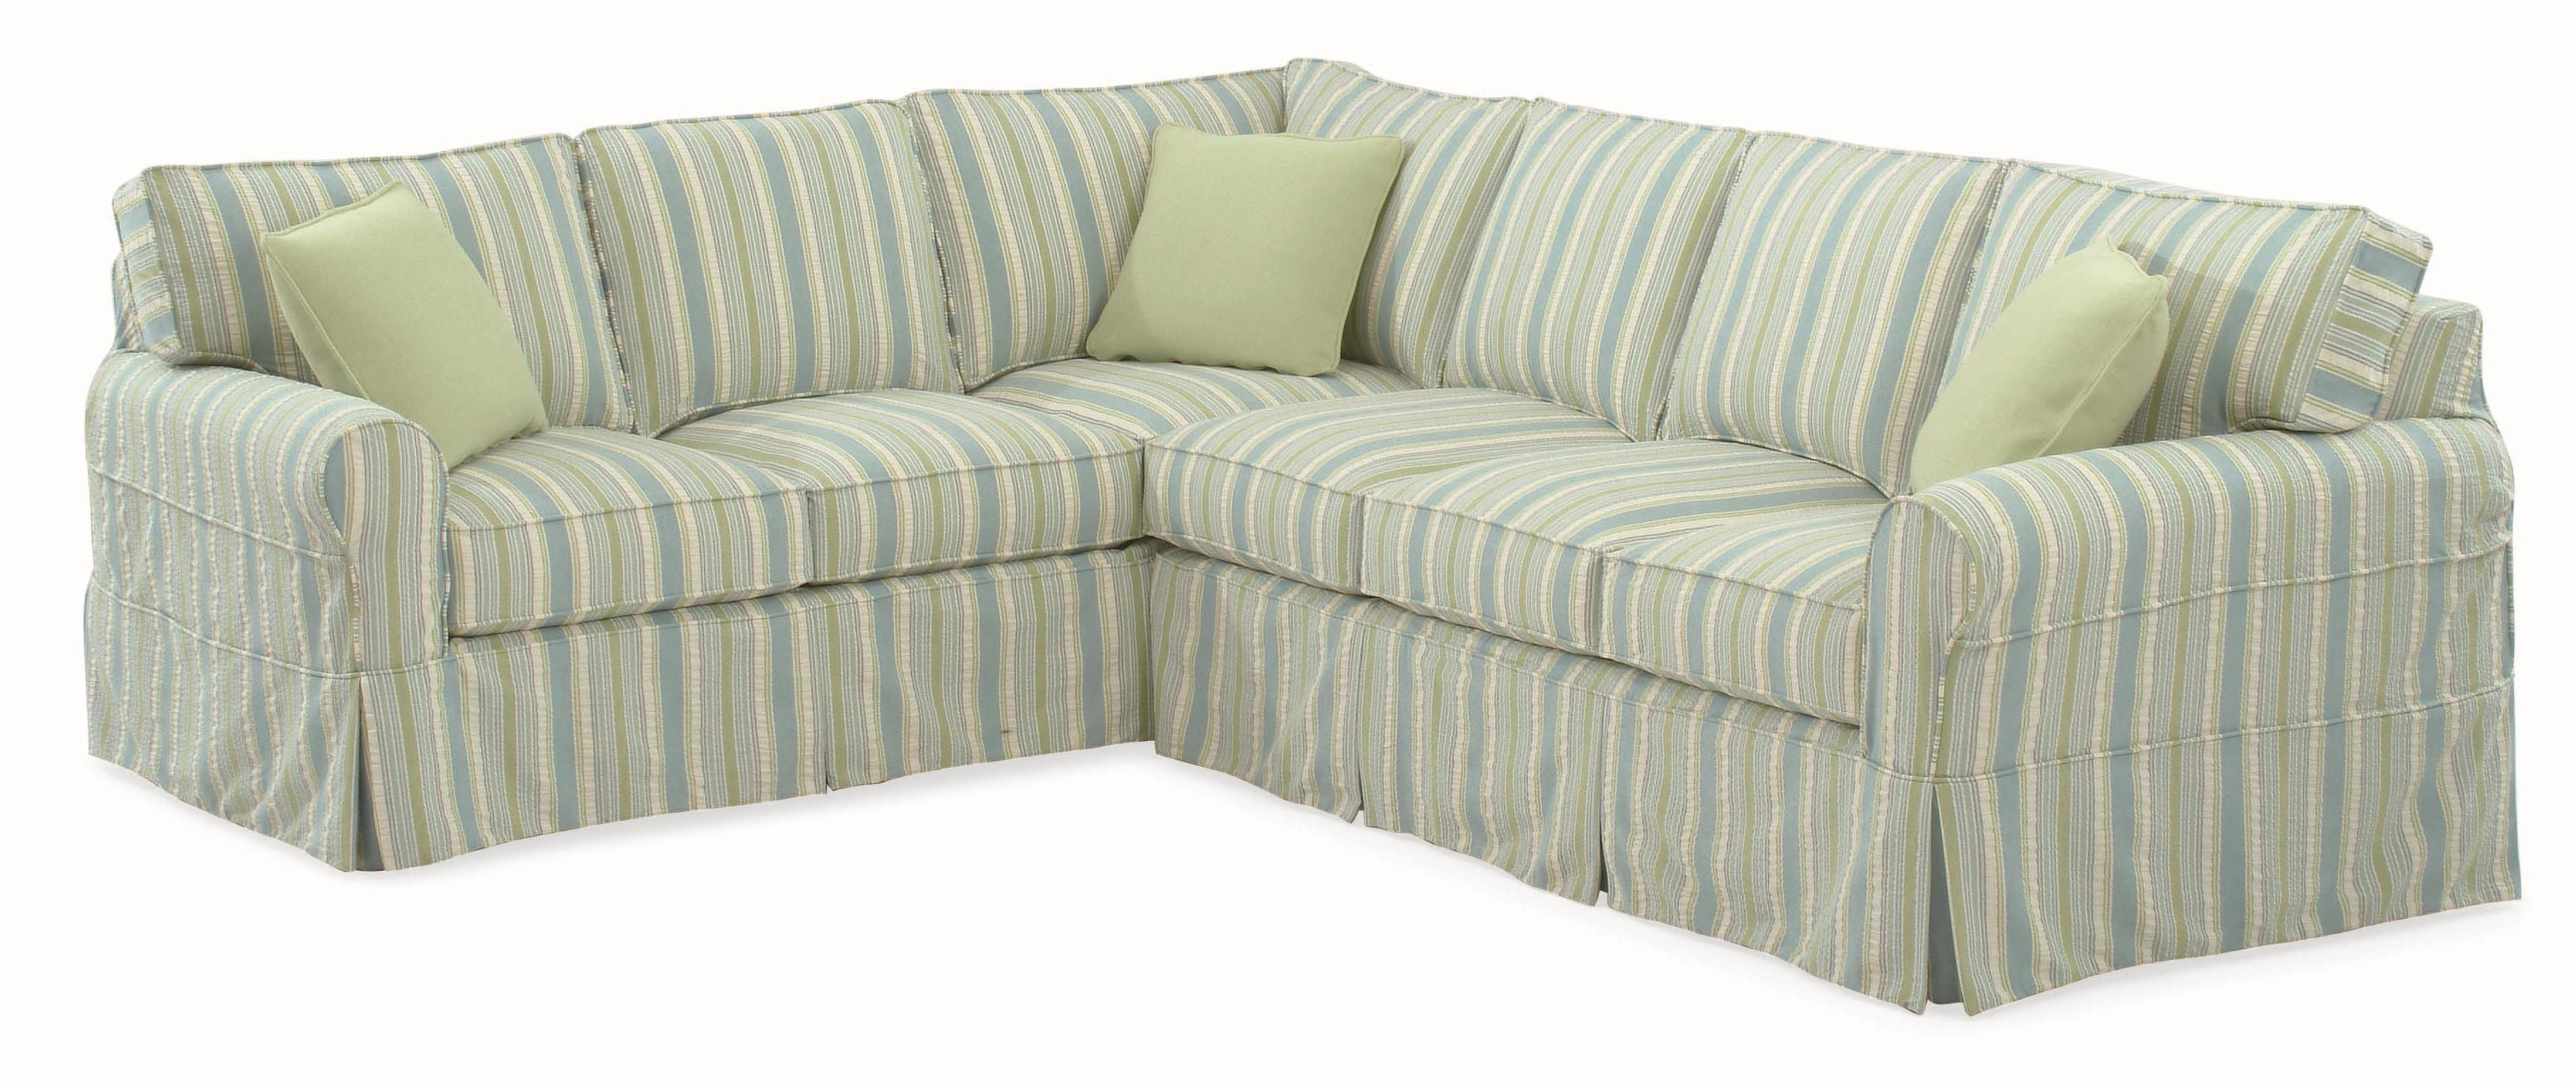 Slipcover Sectional Sofas | Tehranmix Decoration In Braxton Sectional Sofas (View 12 of 20)